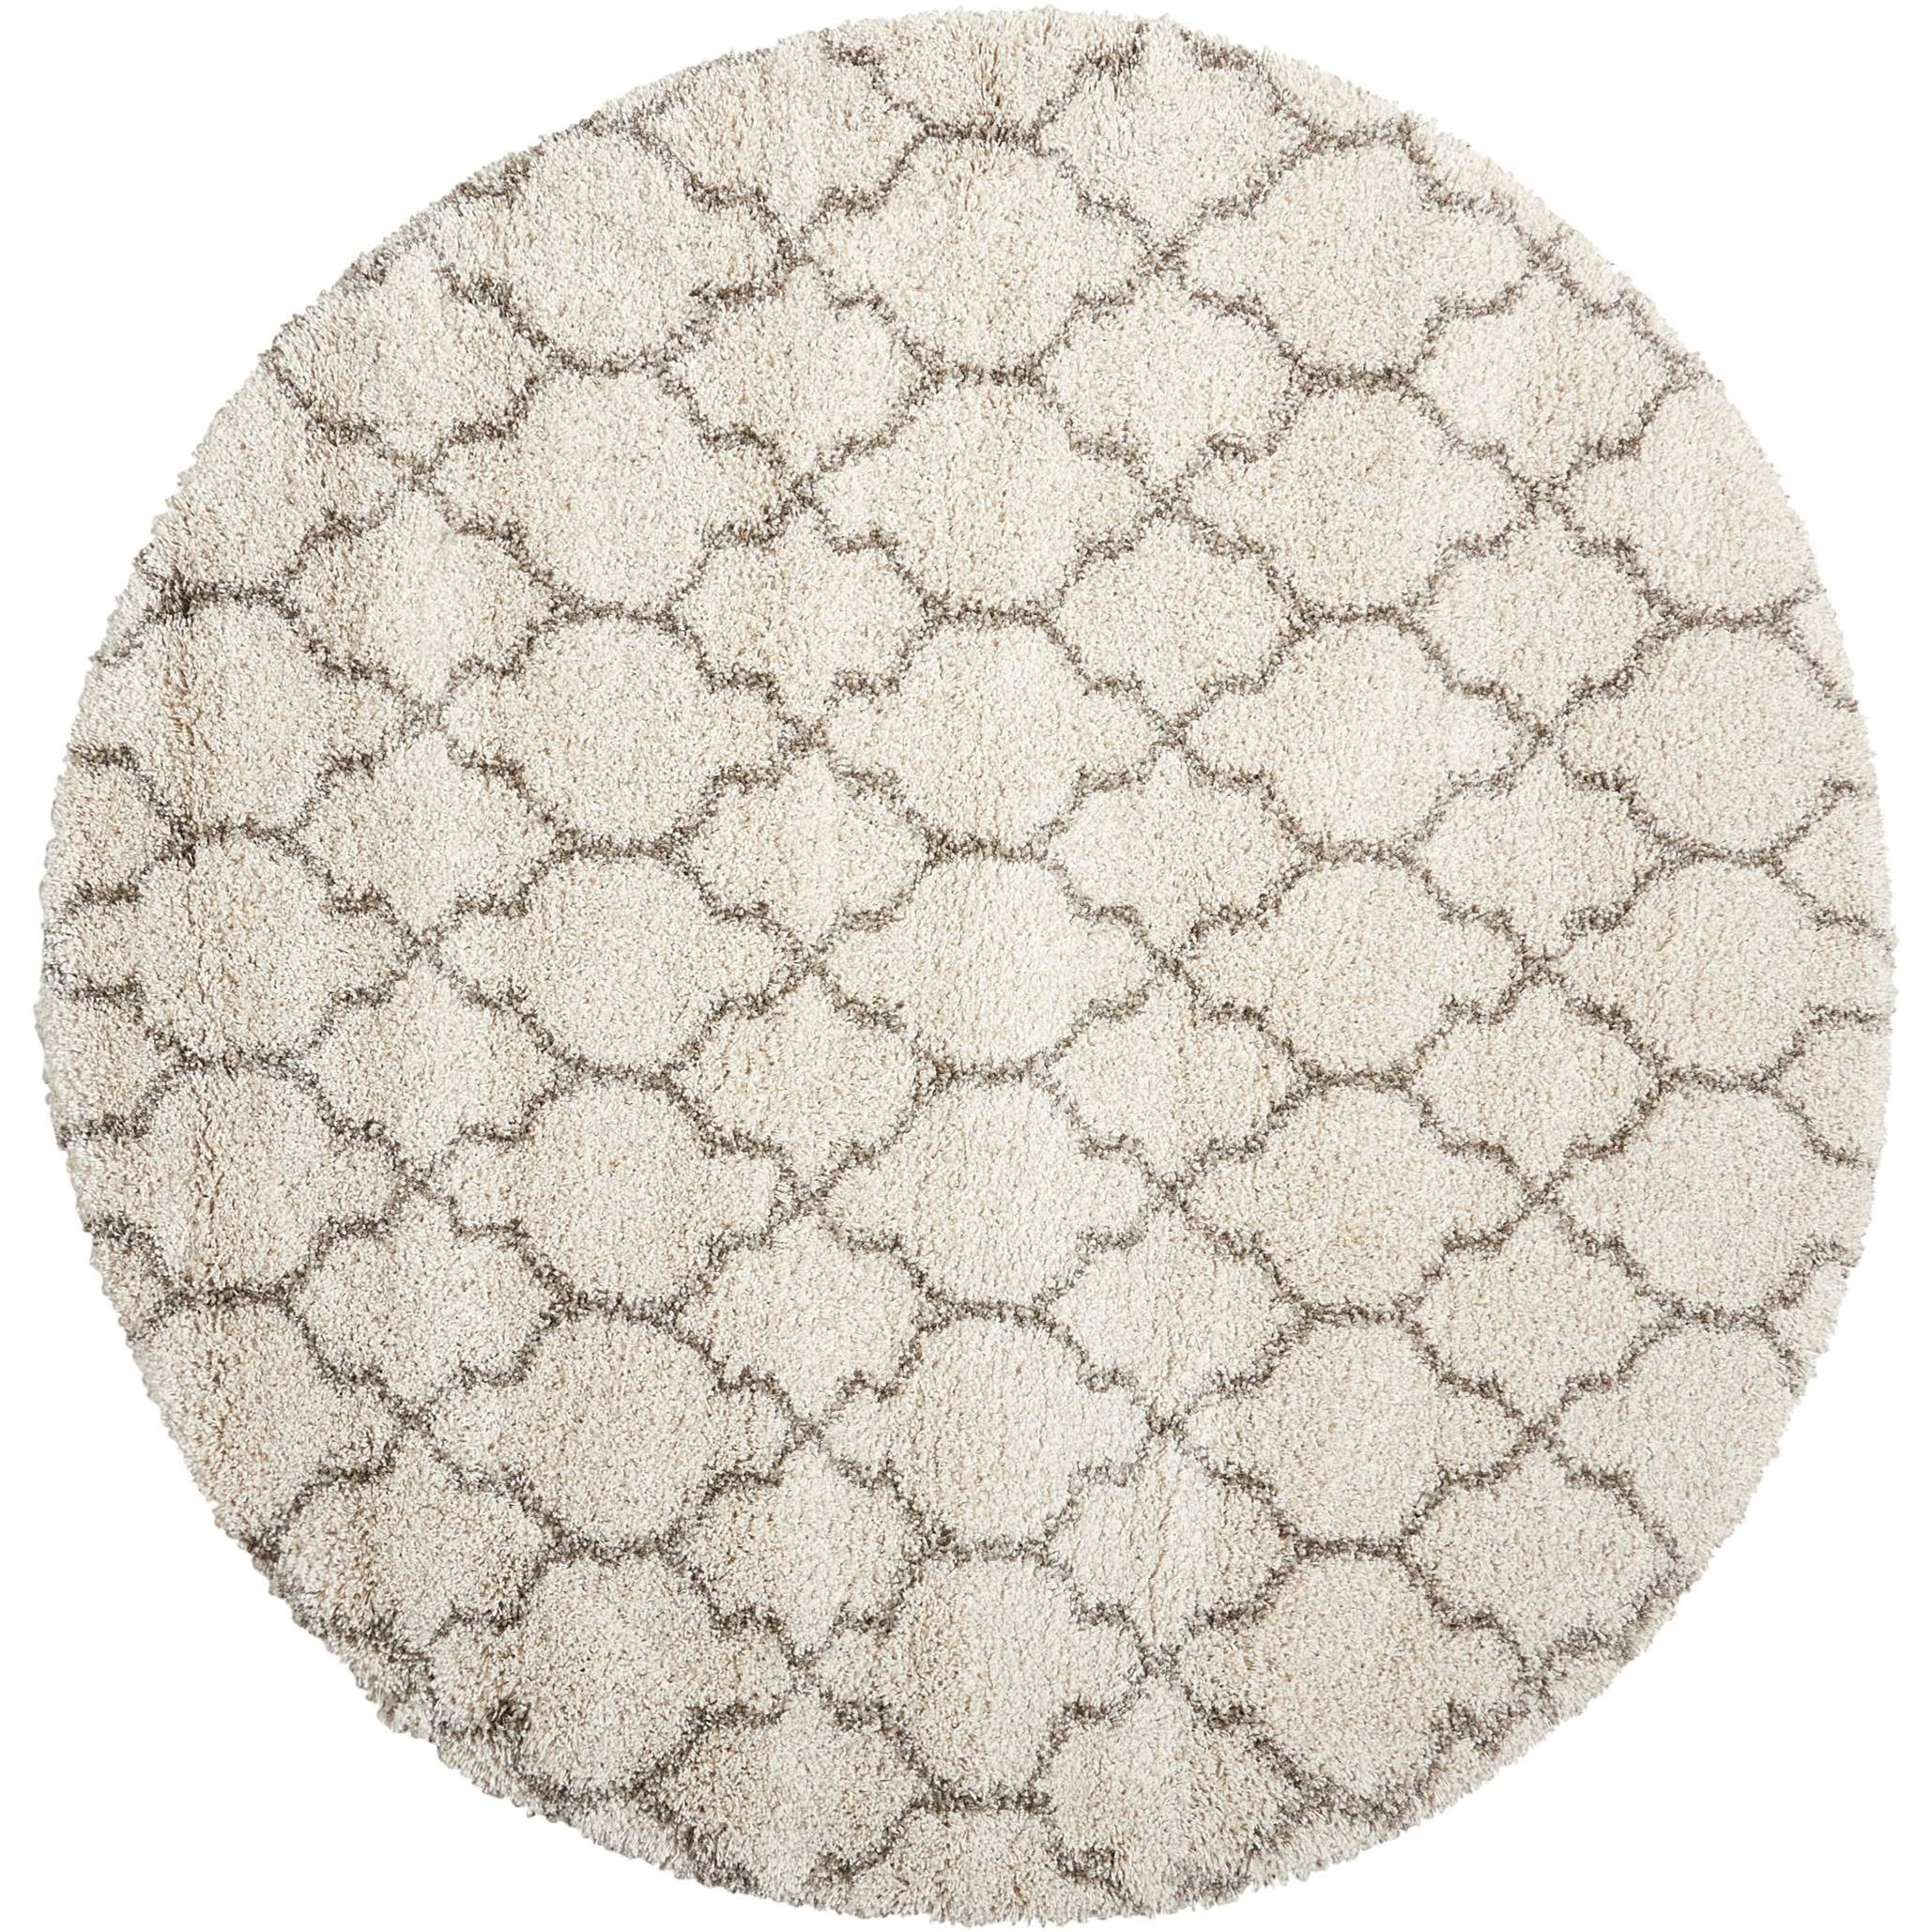 Amore Amore AMOR2 Beige 7' Round   Rug by Nourison at Home Collections Furniture